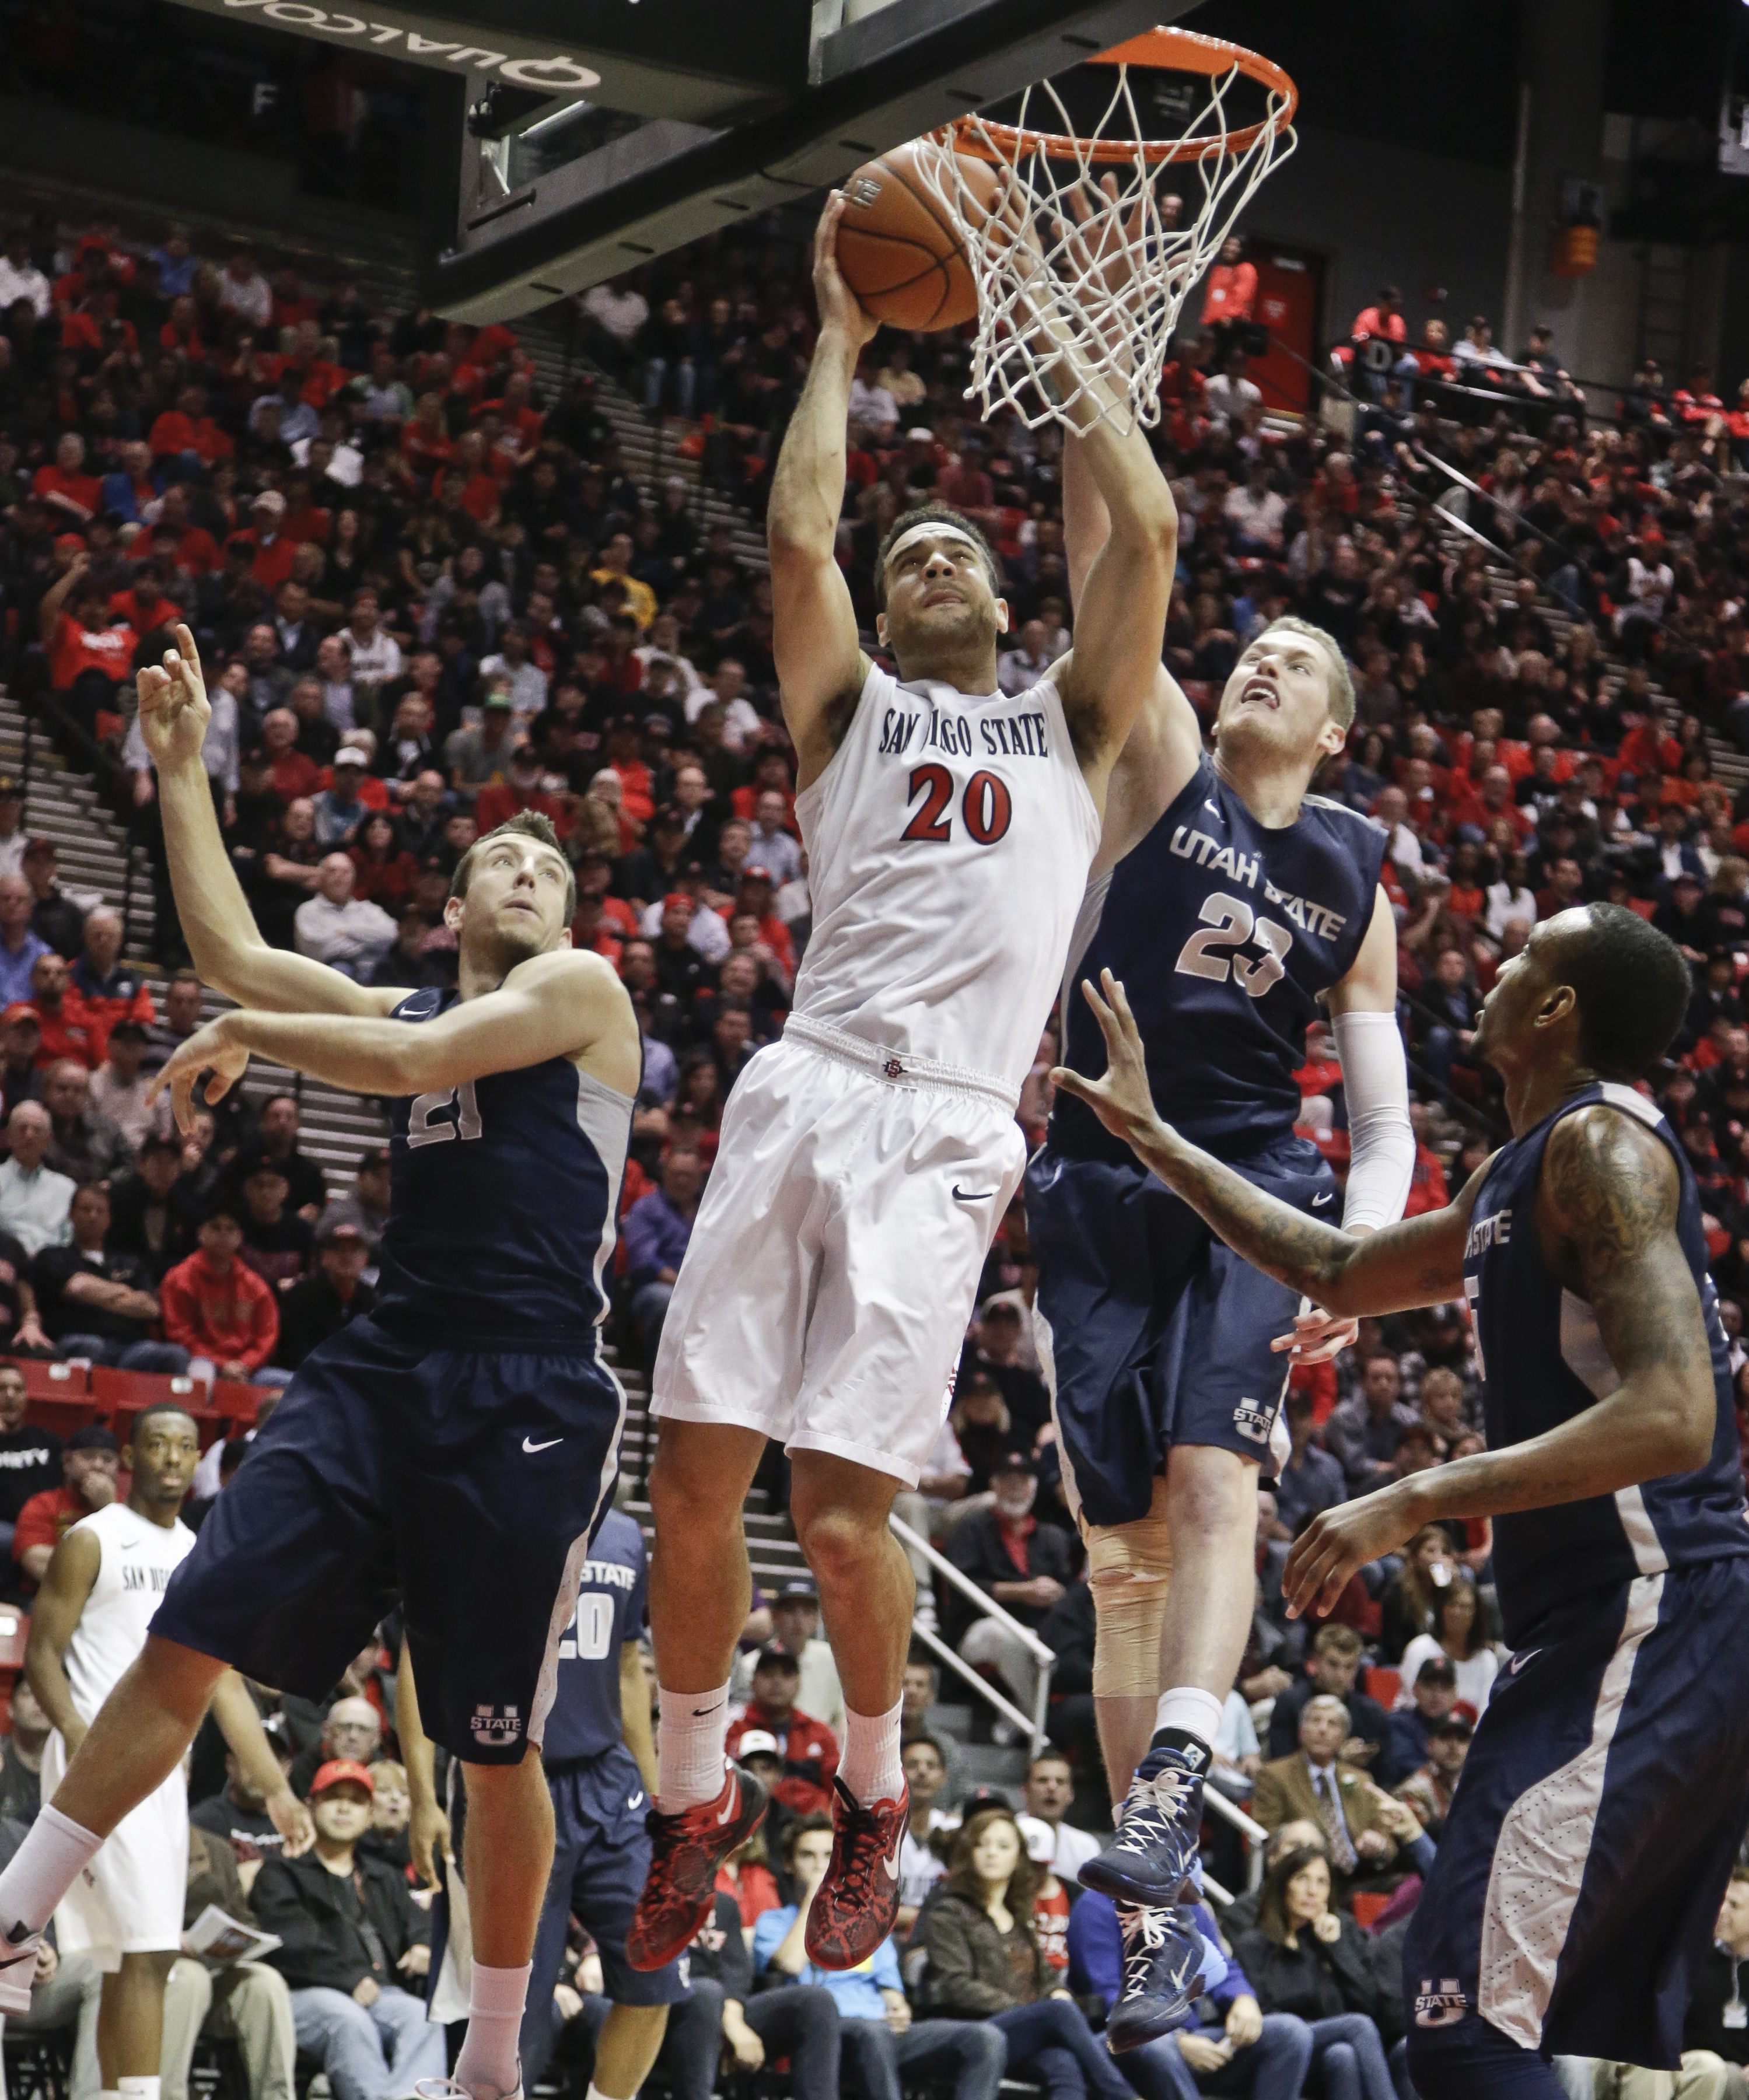 SDSU's Remarkable Basketball Season Gets Westpak Fired Up! Featured Image